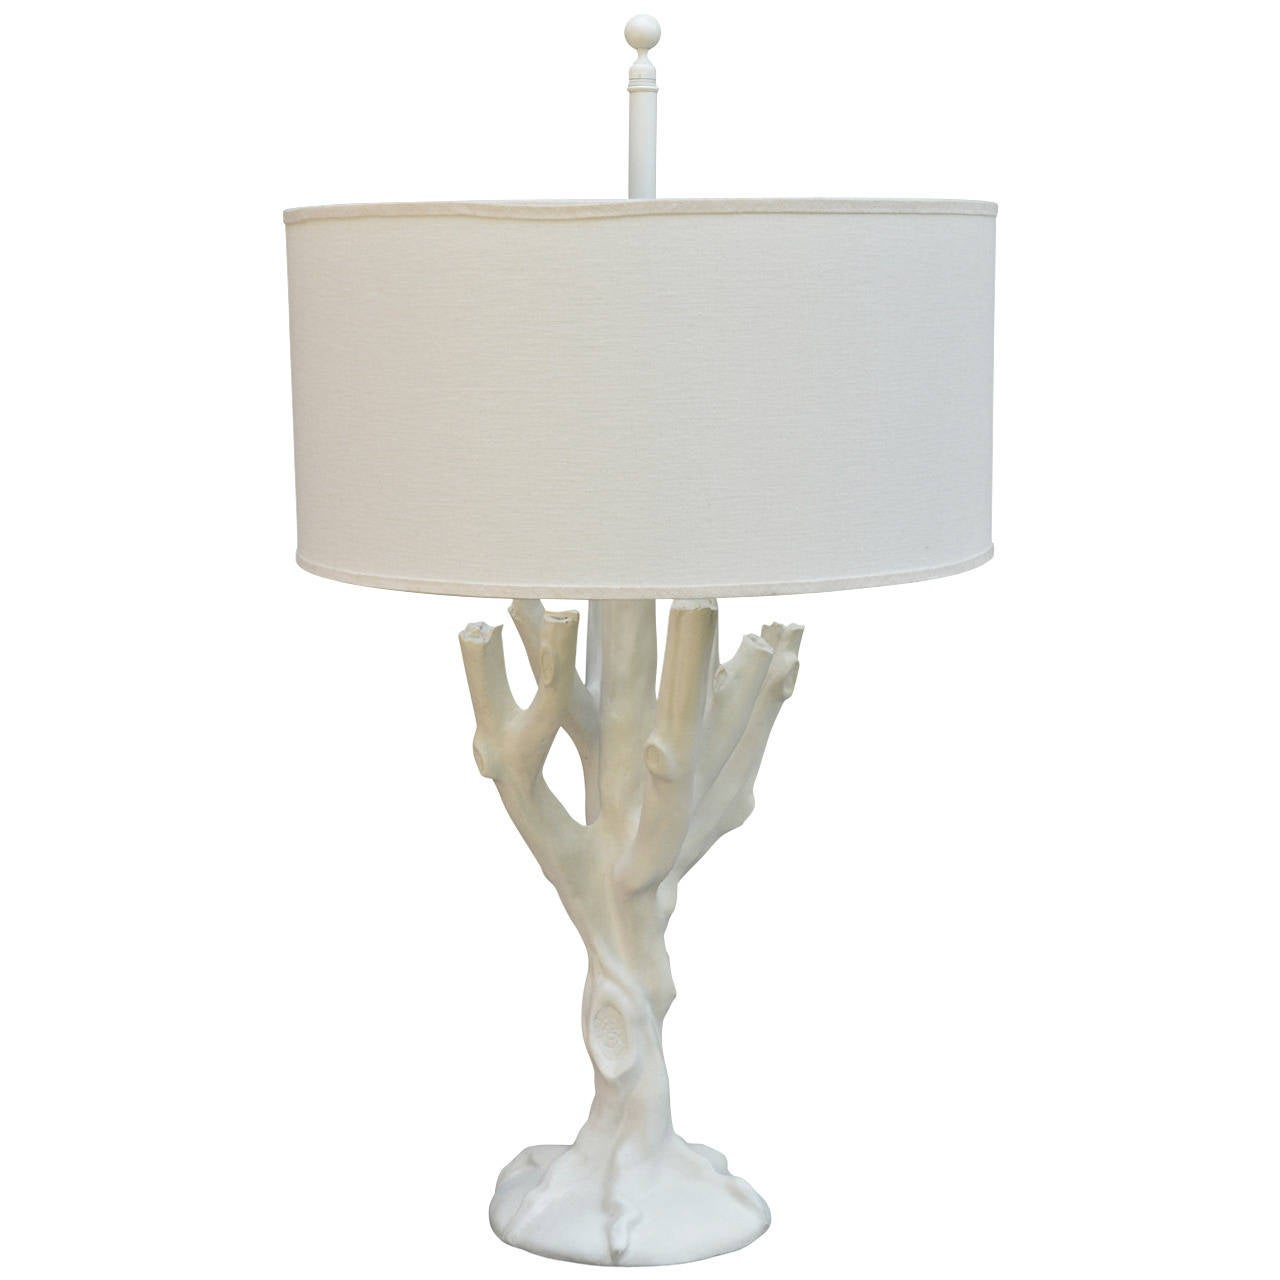 Plaster Tree Lamp in the Style of John Dickinson